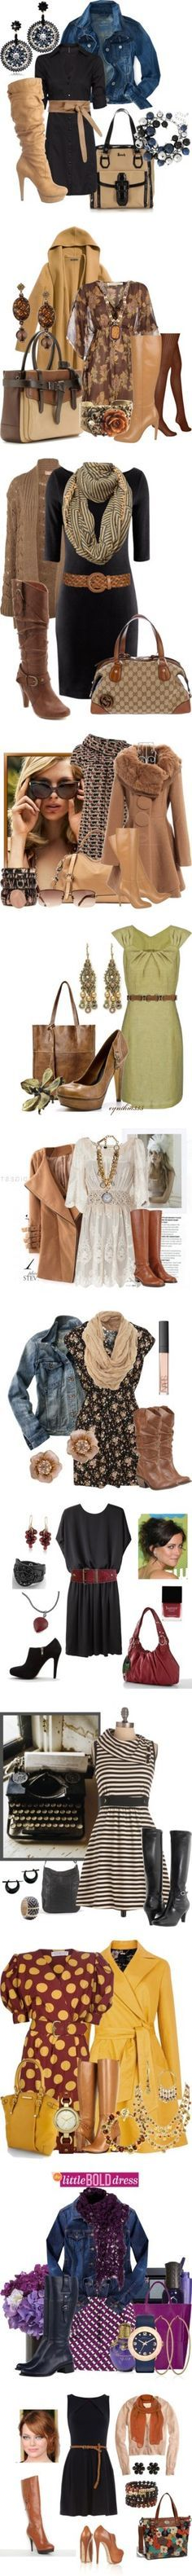 """""""Love that Dress"""" by stylesbyjoey on Polyvore"""